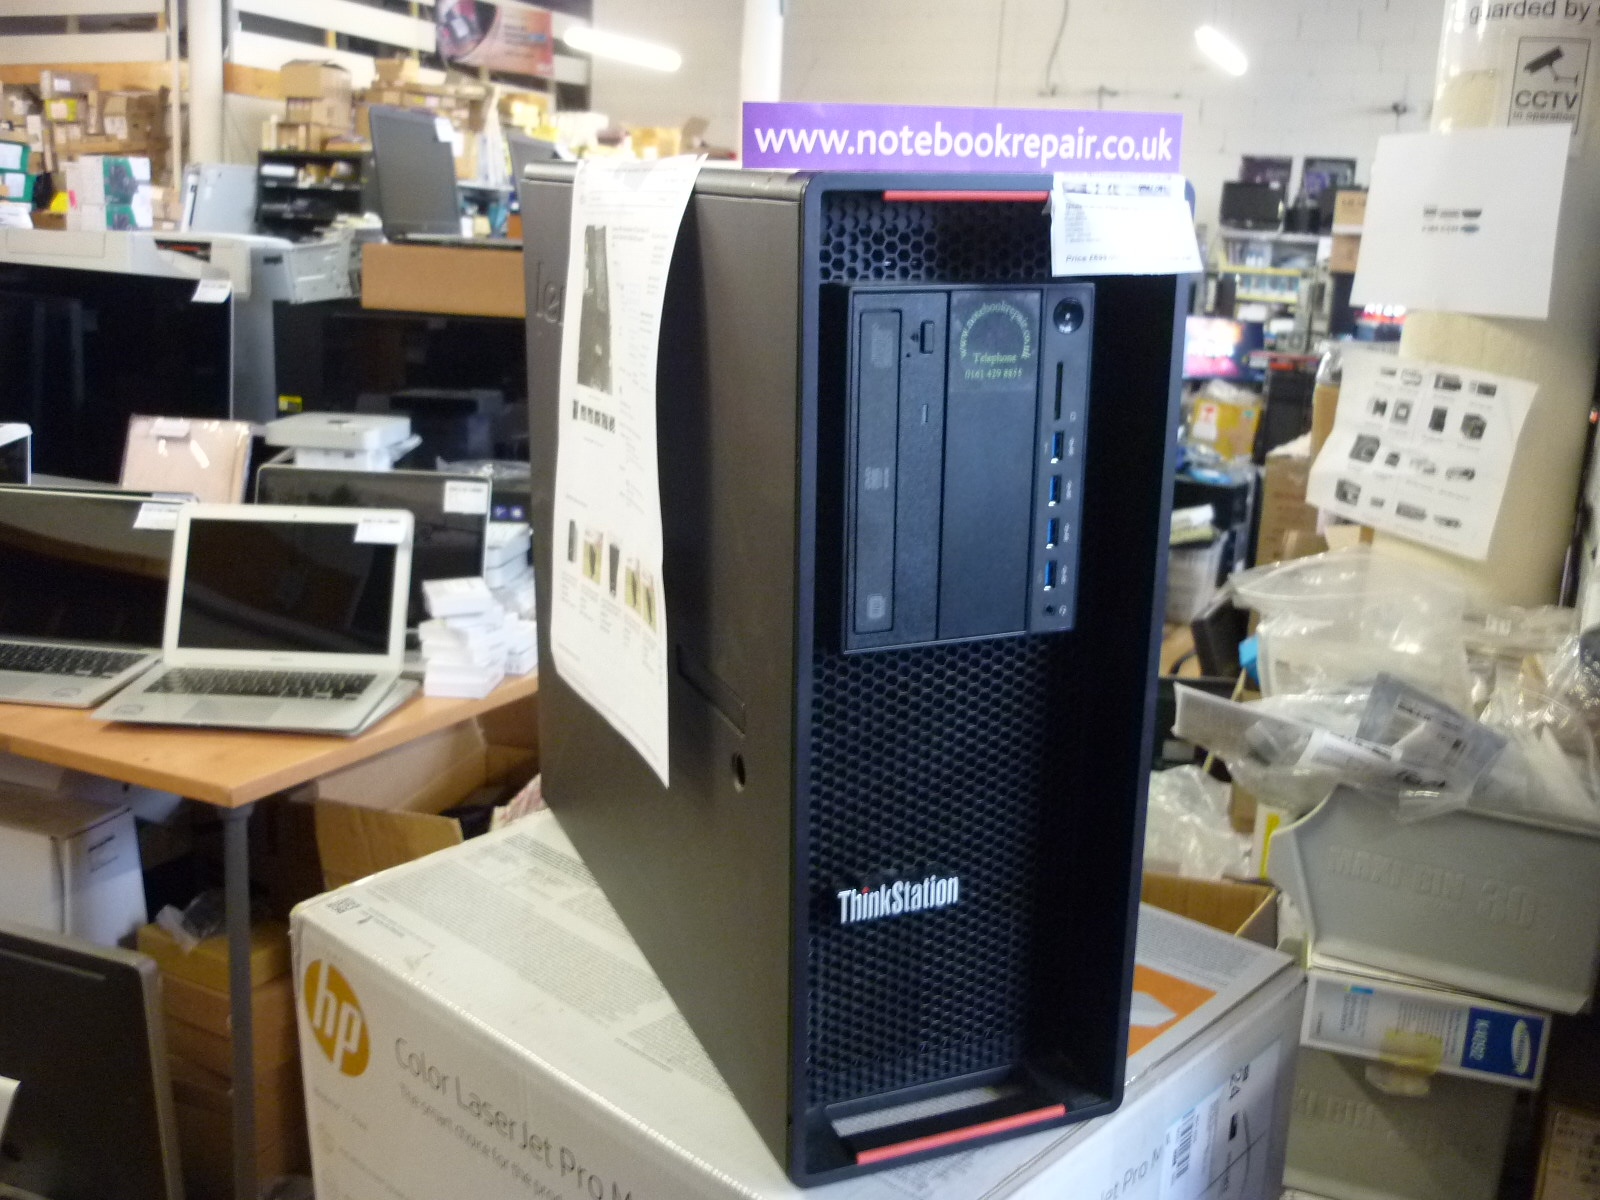 ThinkStation P500 Workstation